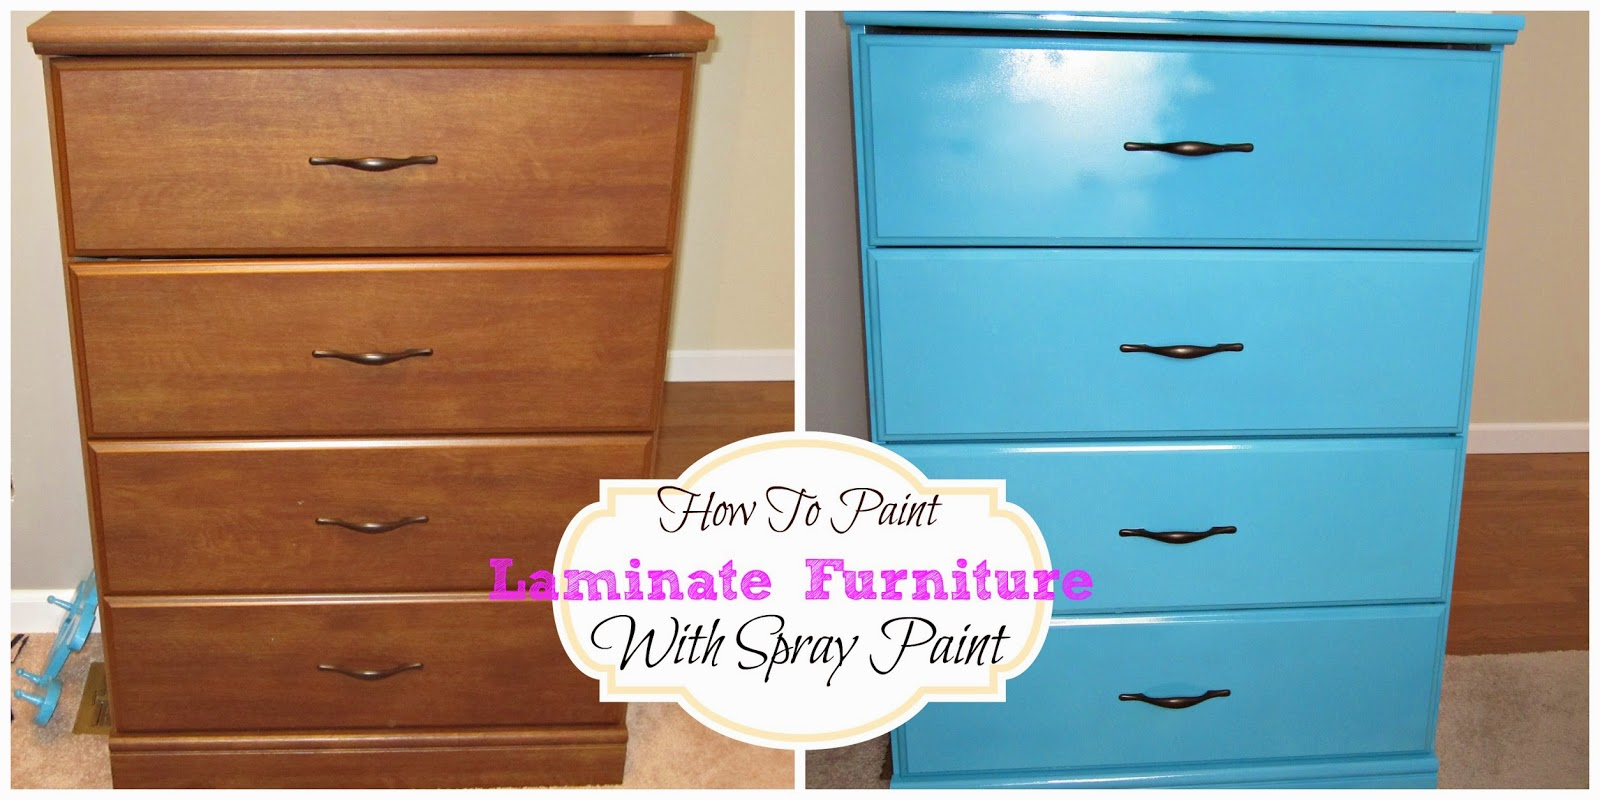 Sarasweetie99 Blog How To Paint Laminate Furniture